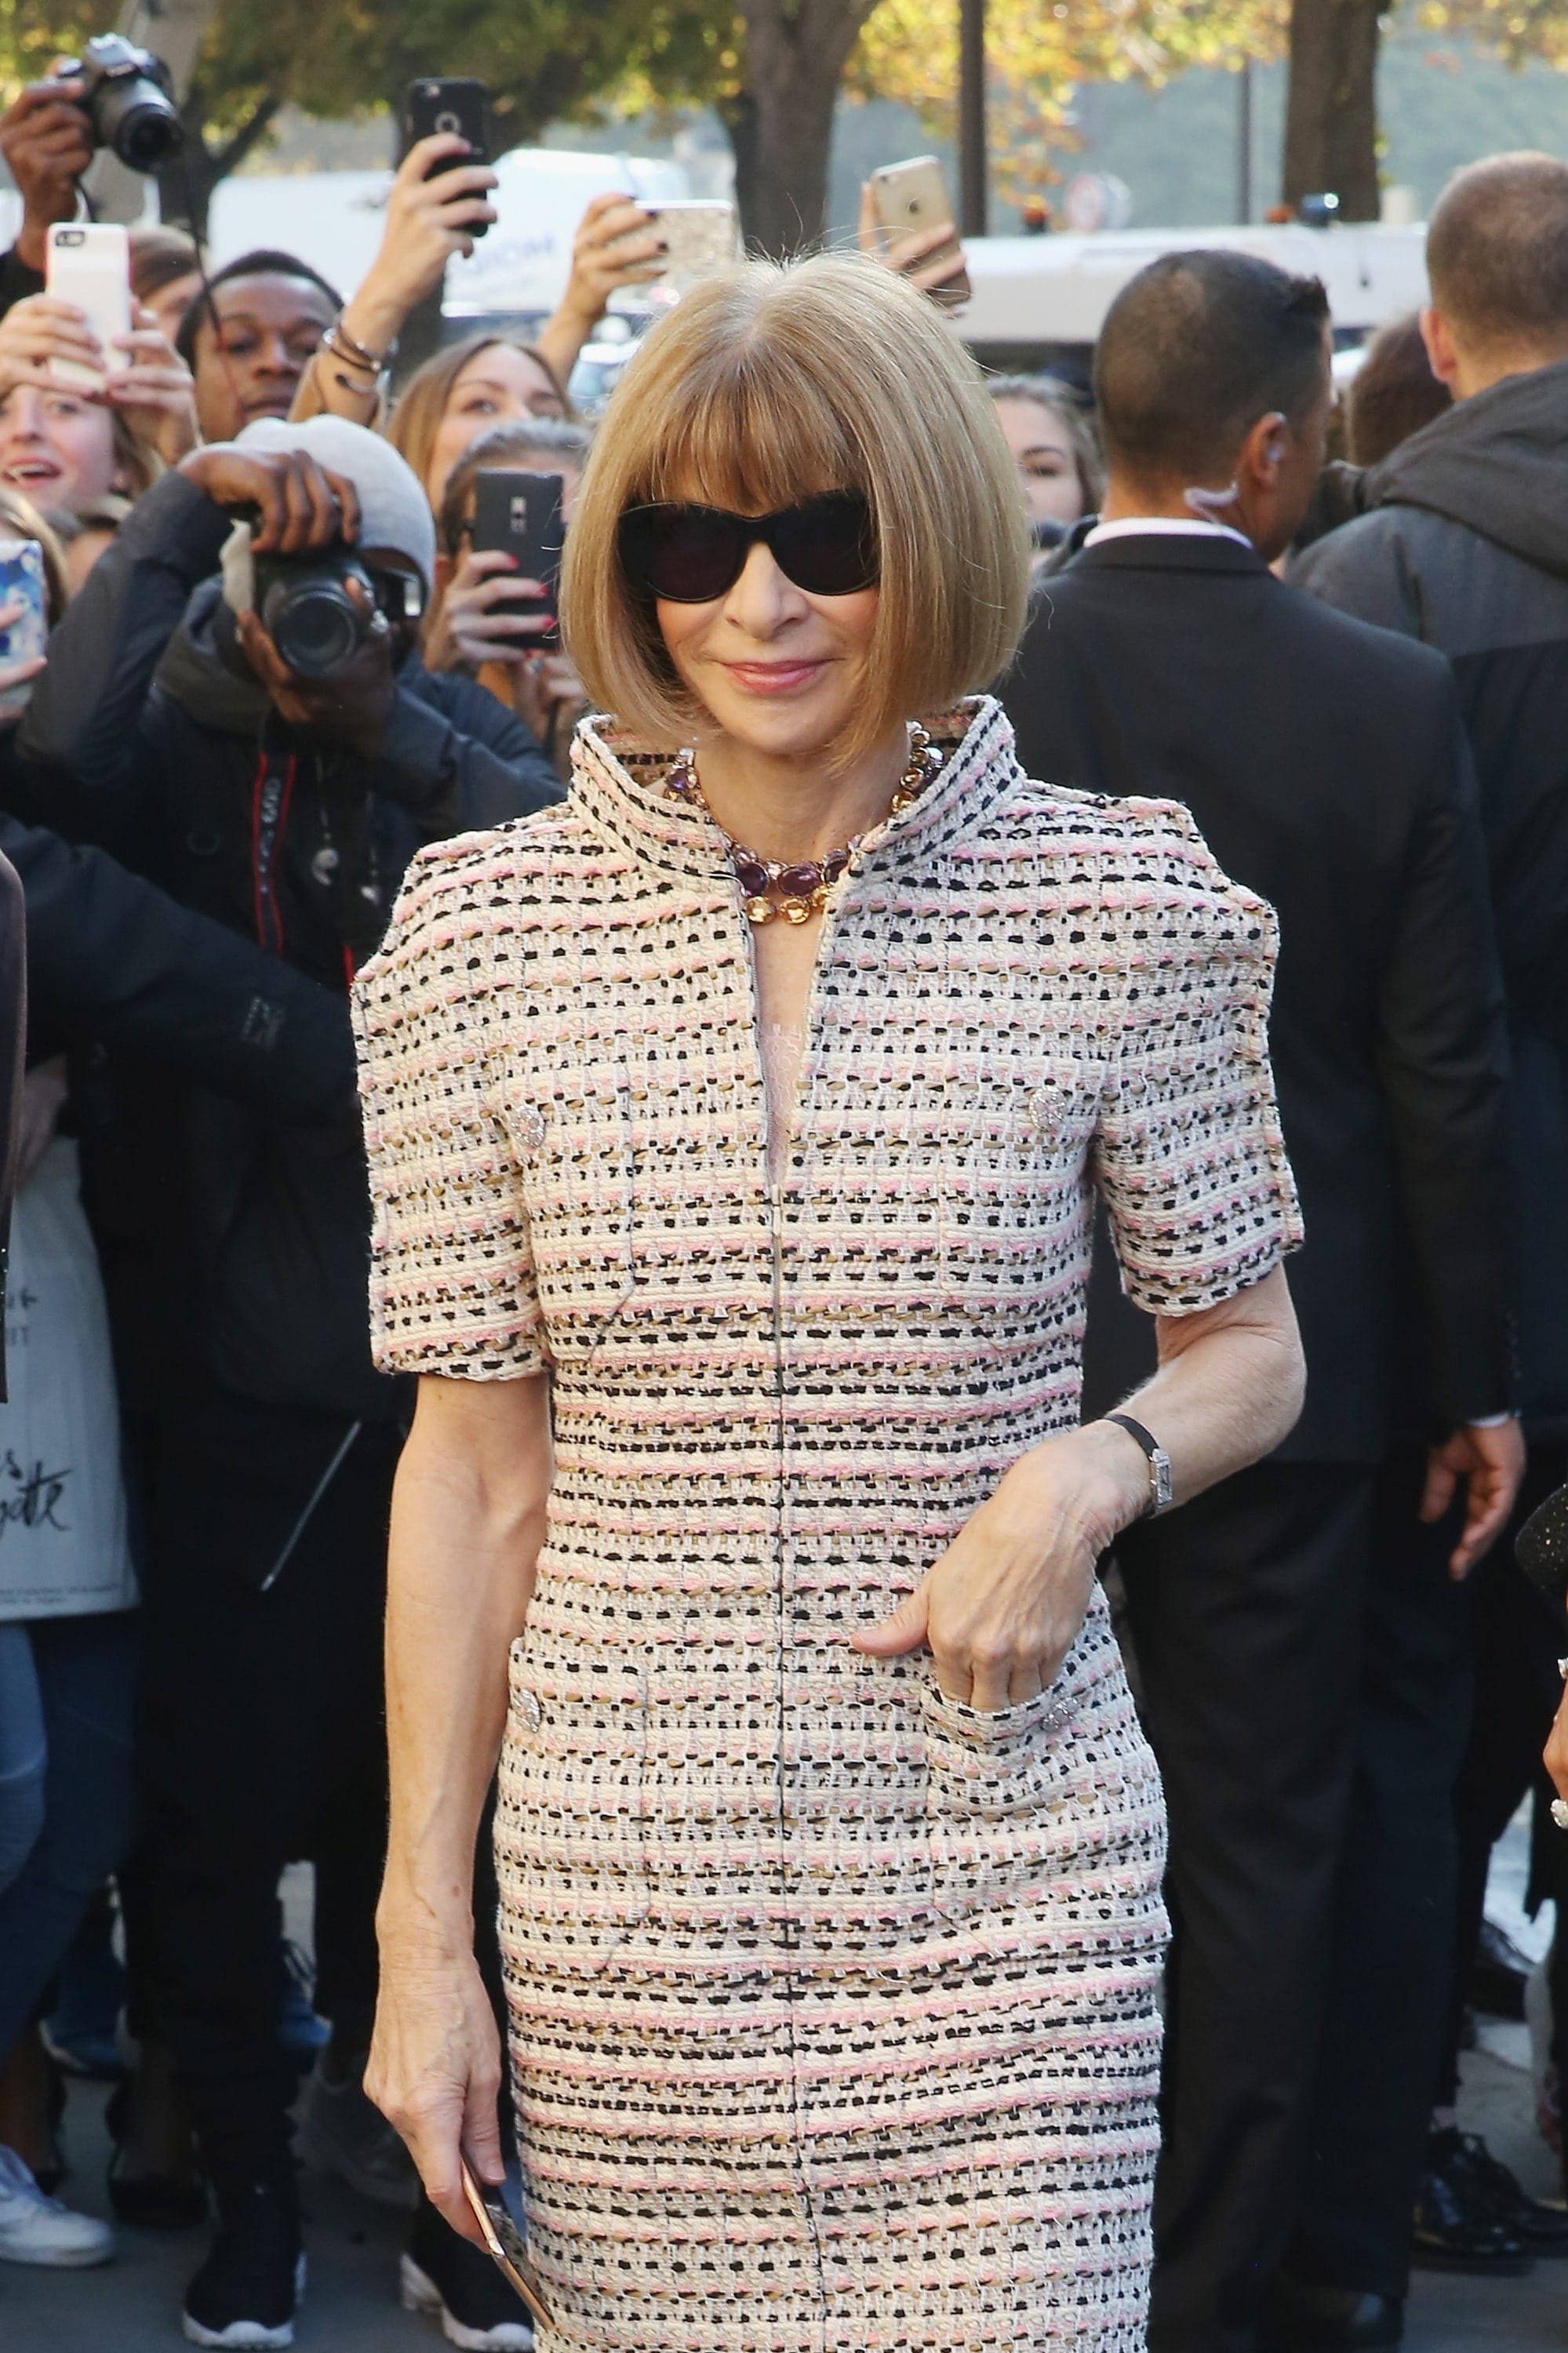 best bob haircuts: All Things Hair - IMAGE - Anna Wintour